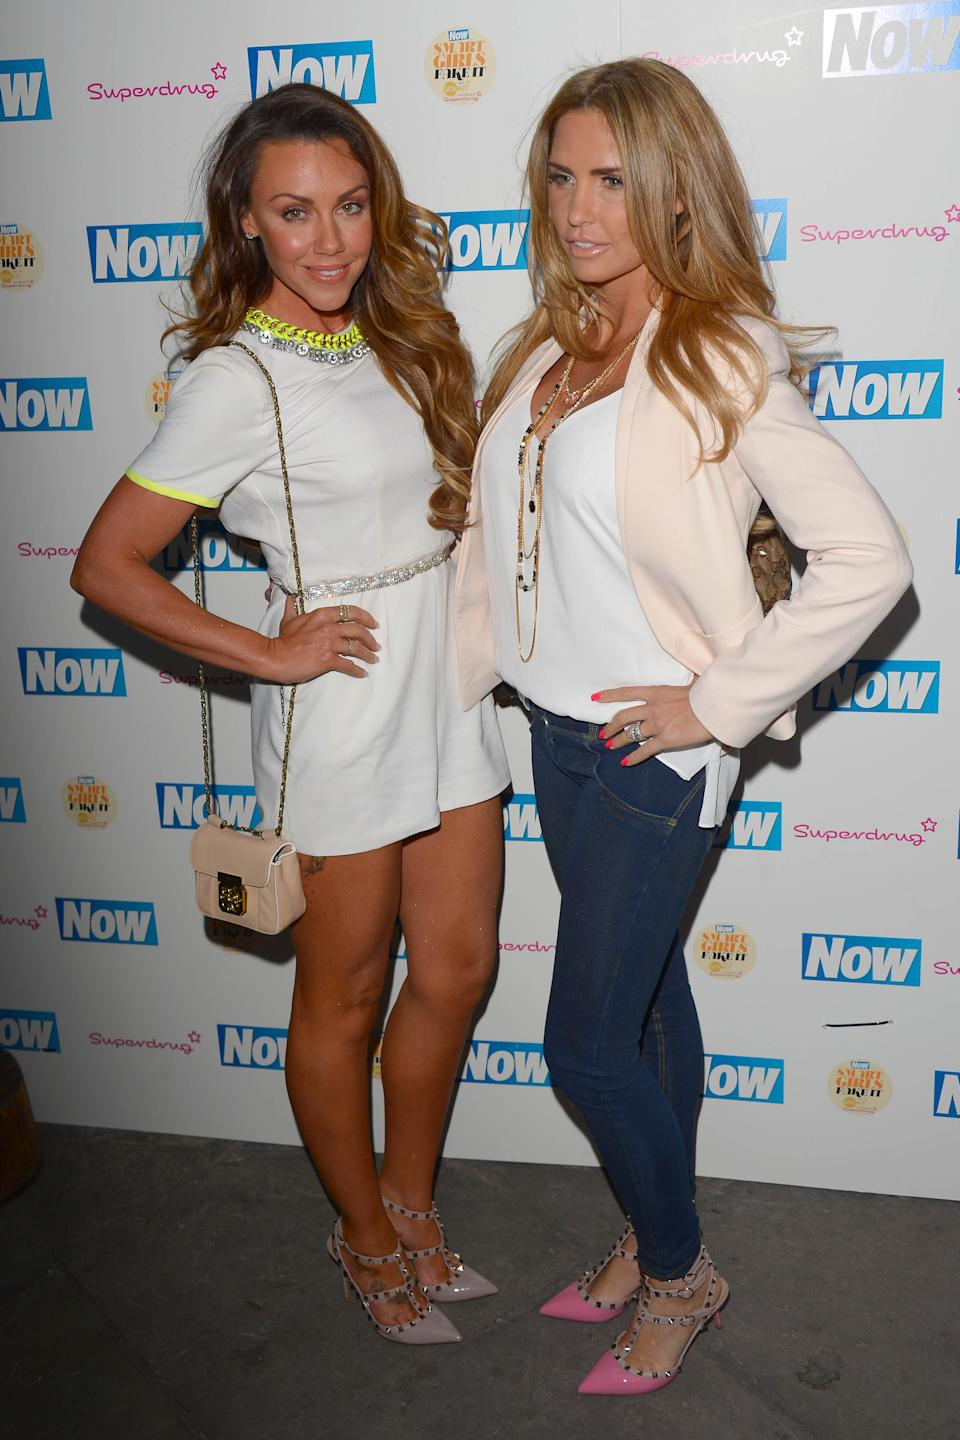 LONDON, ENGLAND - JUNE 09:  Michelle Heaton and Katie Price attend the Now Smart Girls Fake It Campaign launch at Kanaloa on June 9, 2015 in London, England.  (Photo by Stuart C. Wilson/Getty Images)